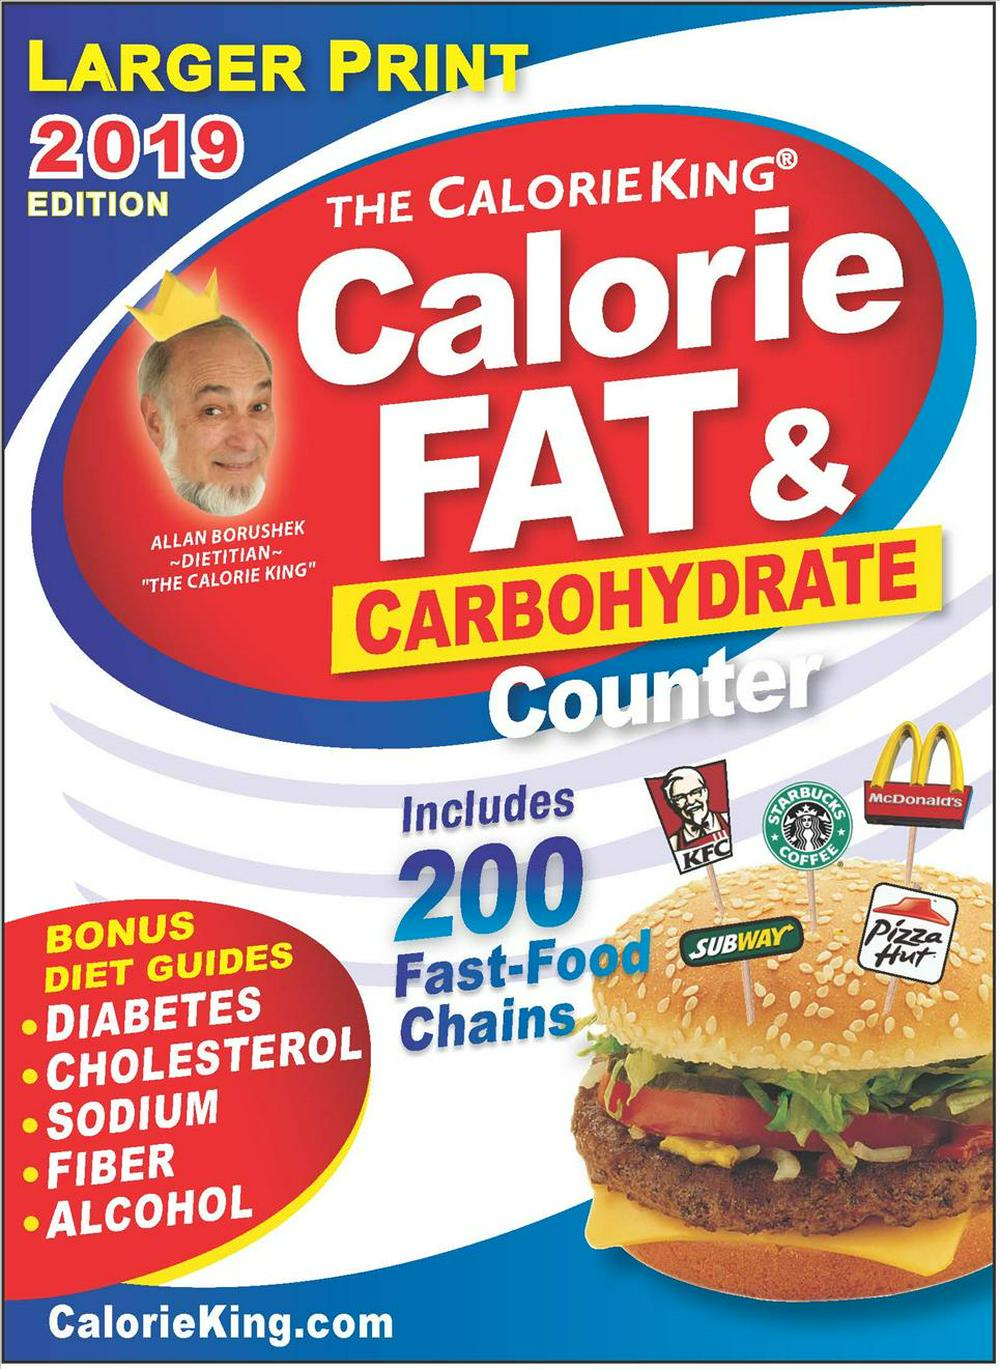 Calorieking 2019 Larger Print Calorie, Fat & Carbohydrate Counter